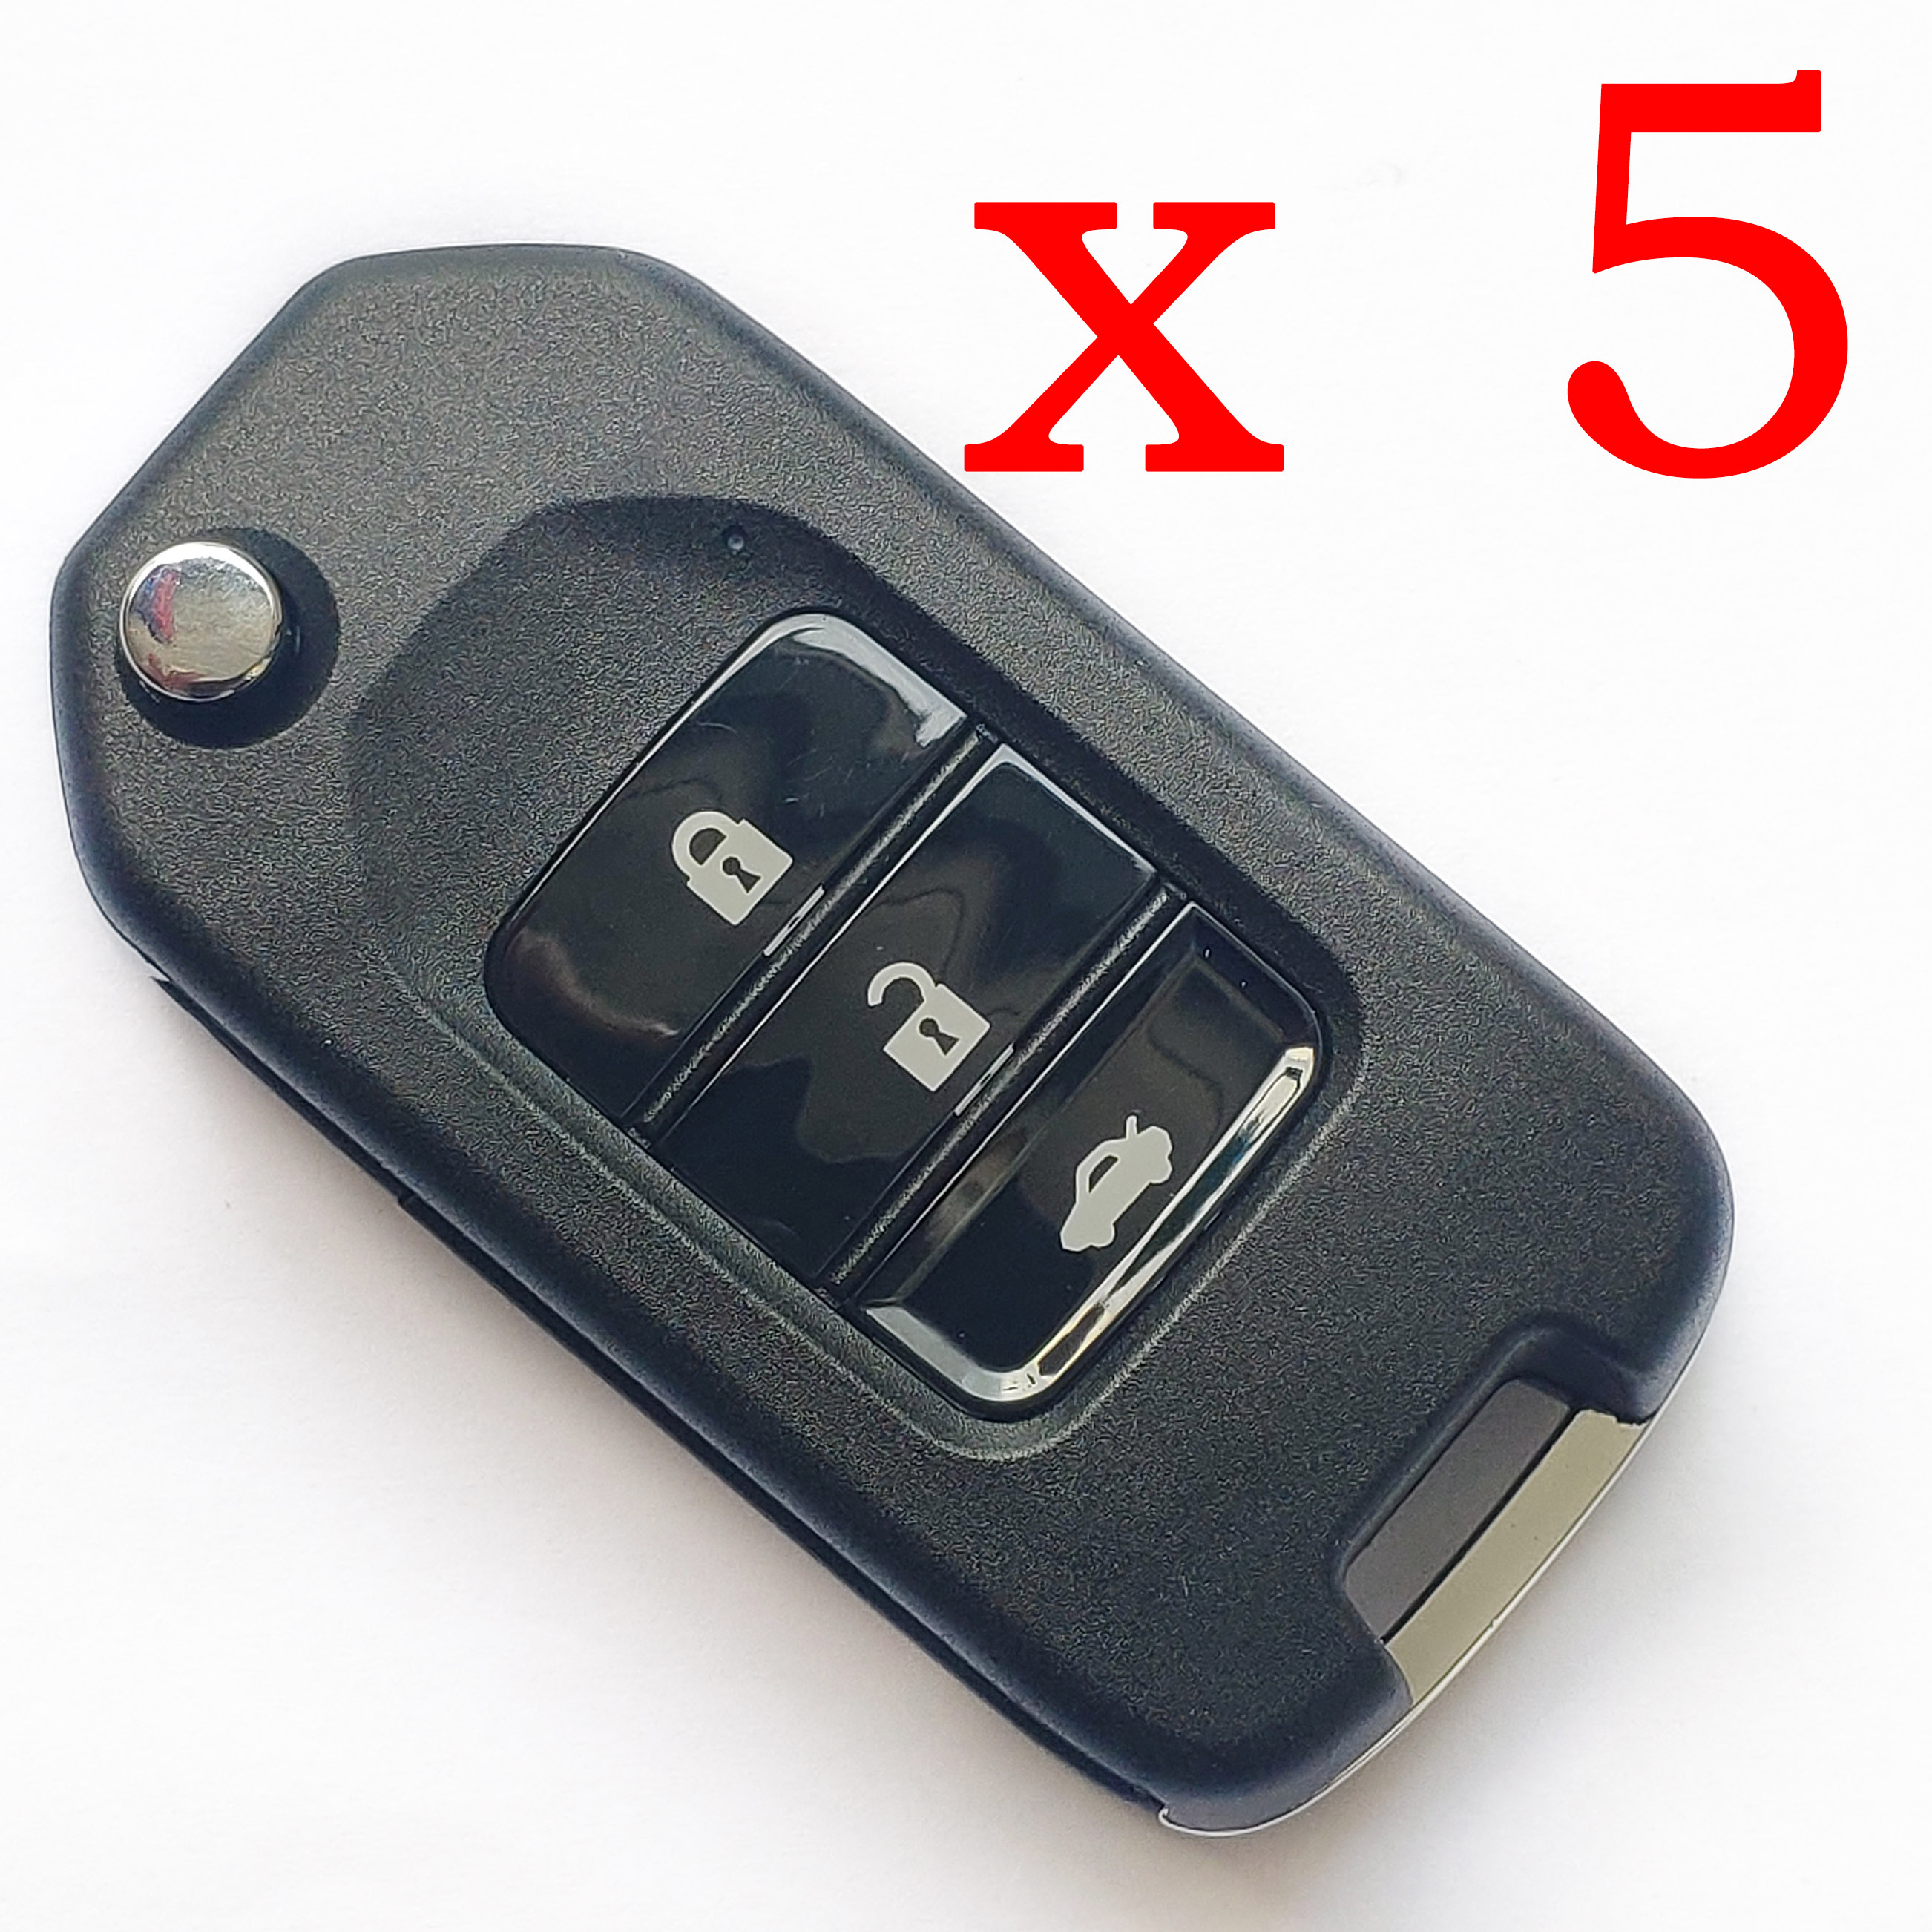 5 pieces Xhorse VVDI Honda Type Universal Remote Control - with Blades & Logos